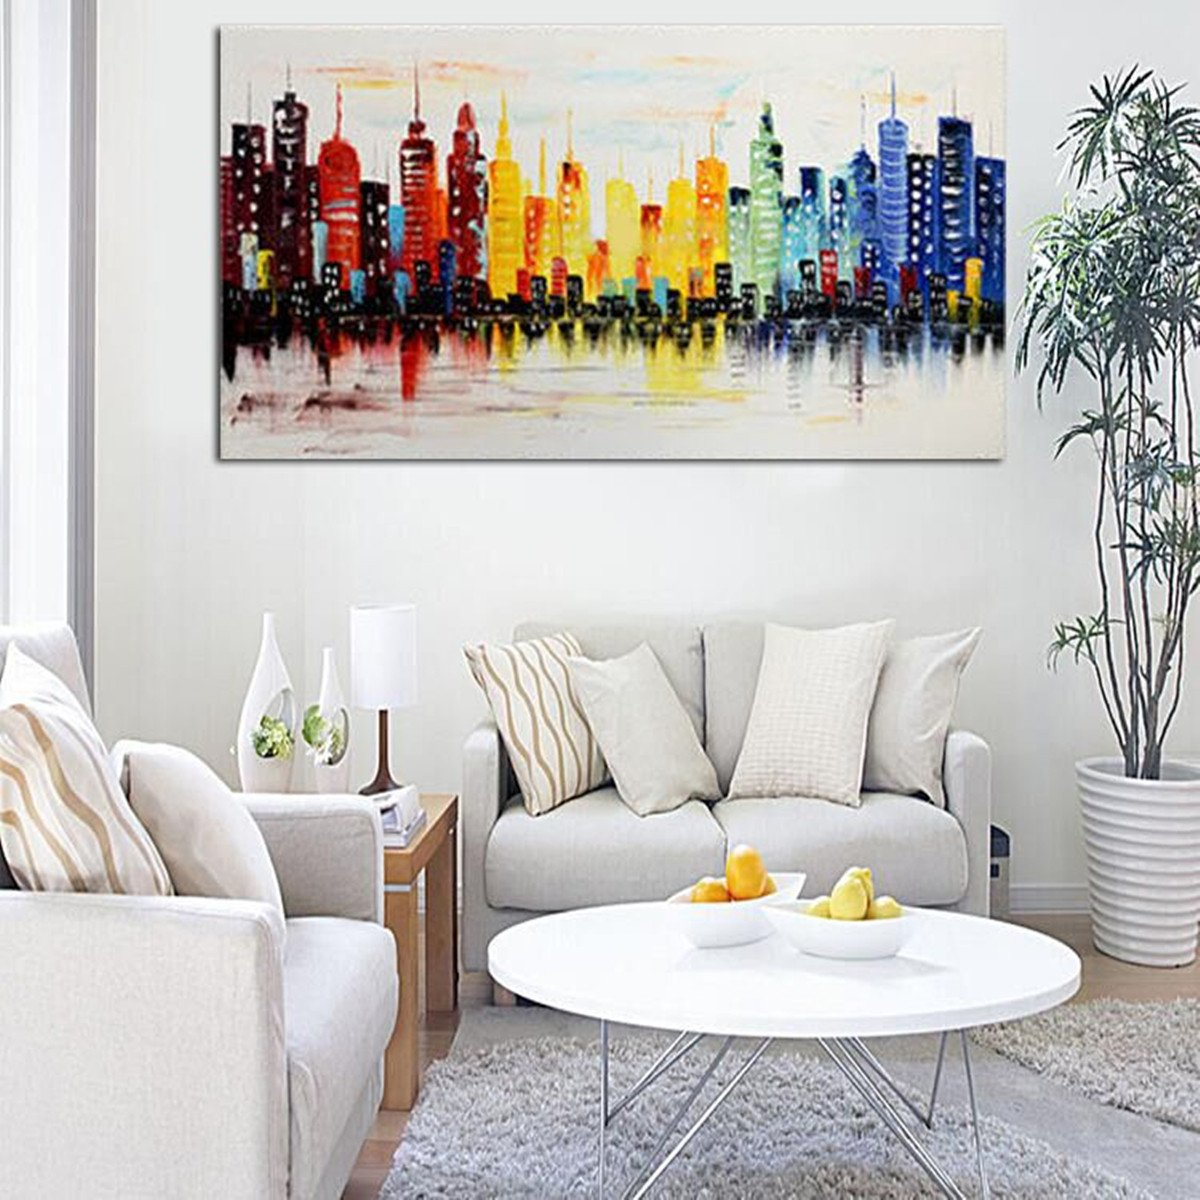 Modern Living Room Wall Decor Beautiful 120x60cm Modern City Canvas Abstract Painting Print Living Room Art Wall Decor No Frame